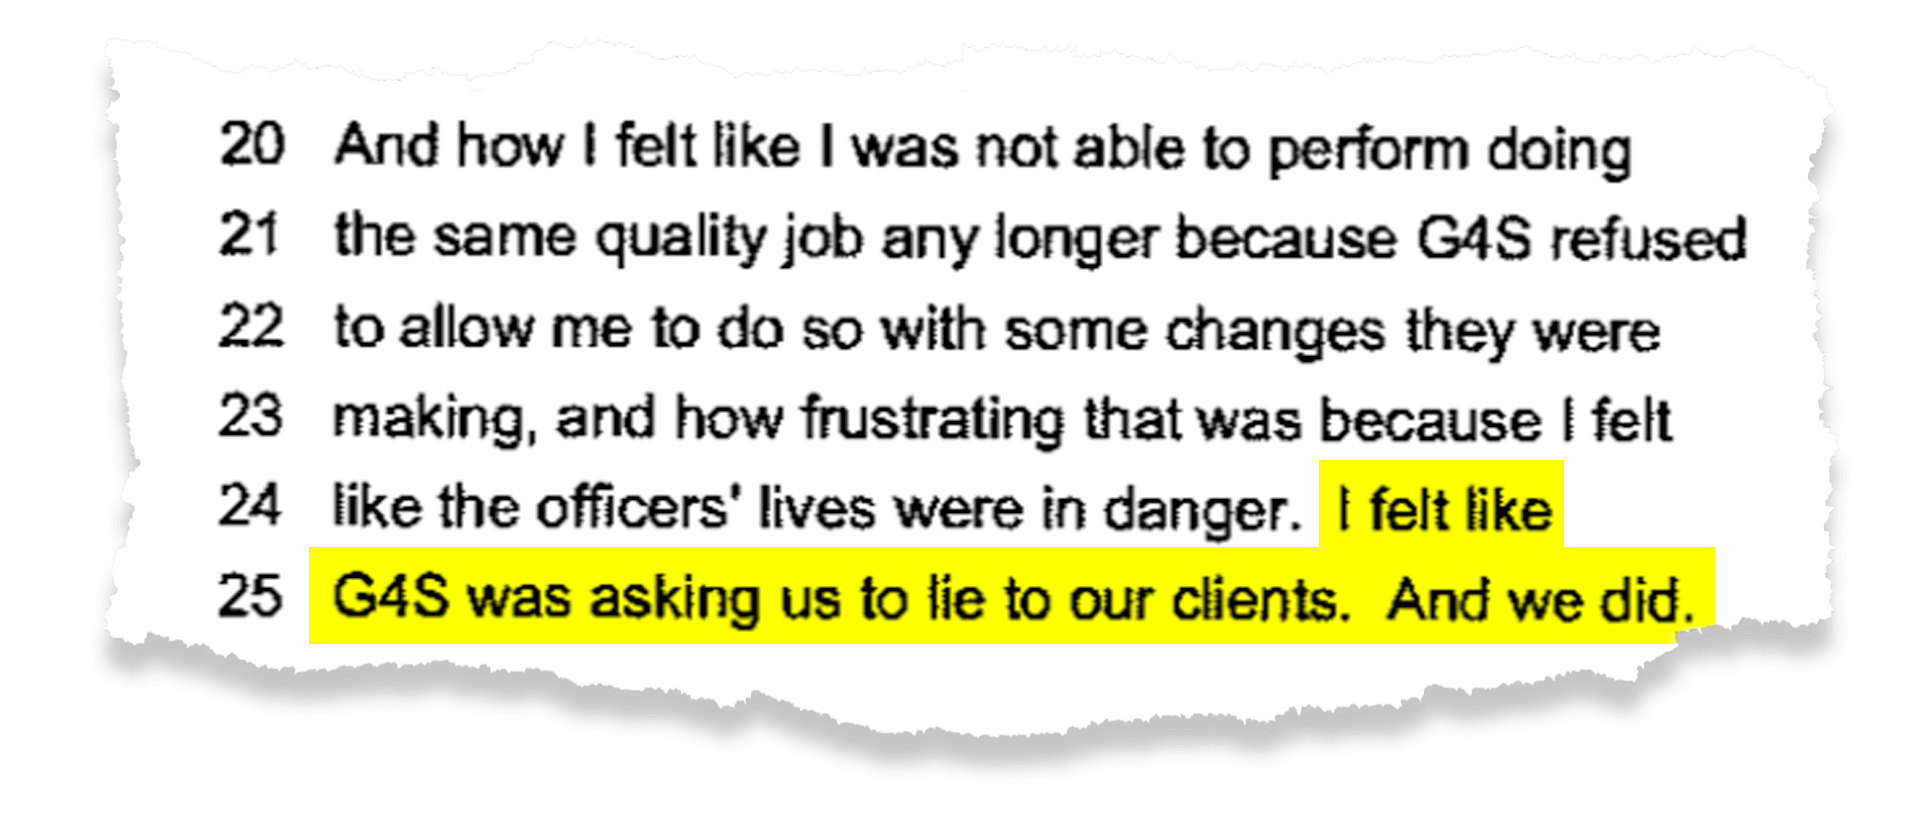 Kimberly Horton, an operations manager in Louisiana, testified in a 2016 lawsuit that G4S pushed her to quickly hire guards regardless of their qualifications.